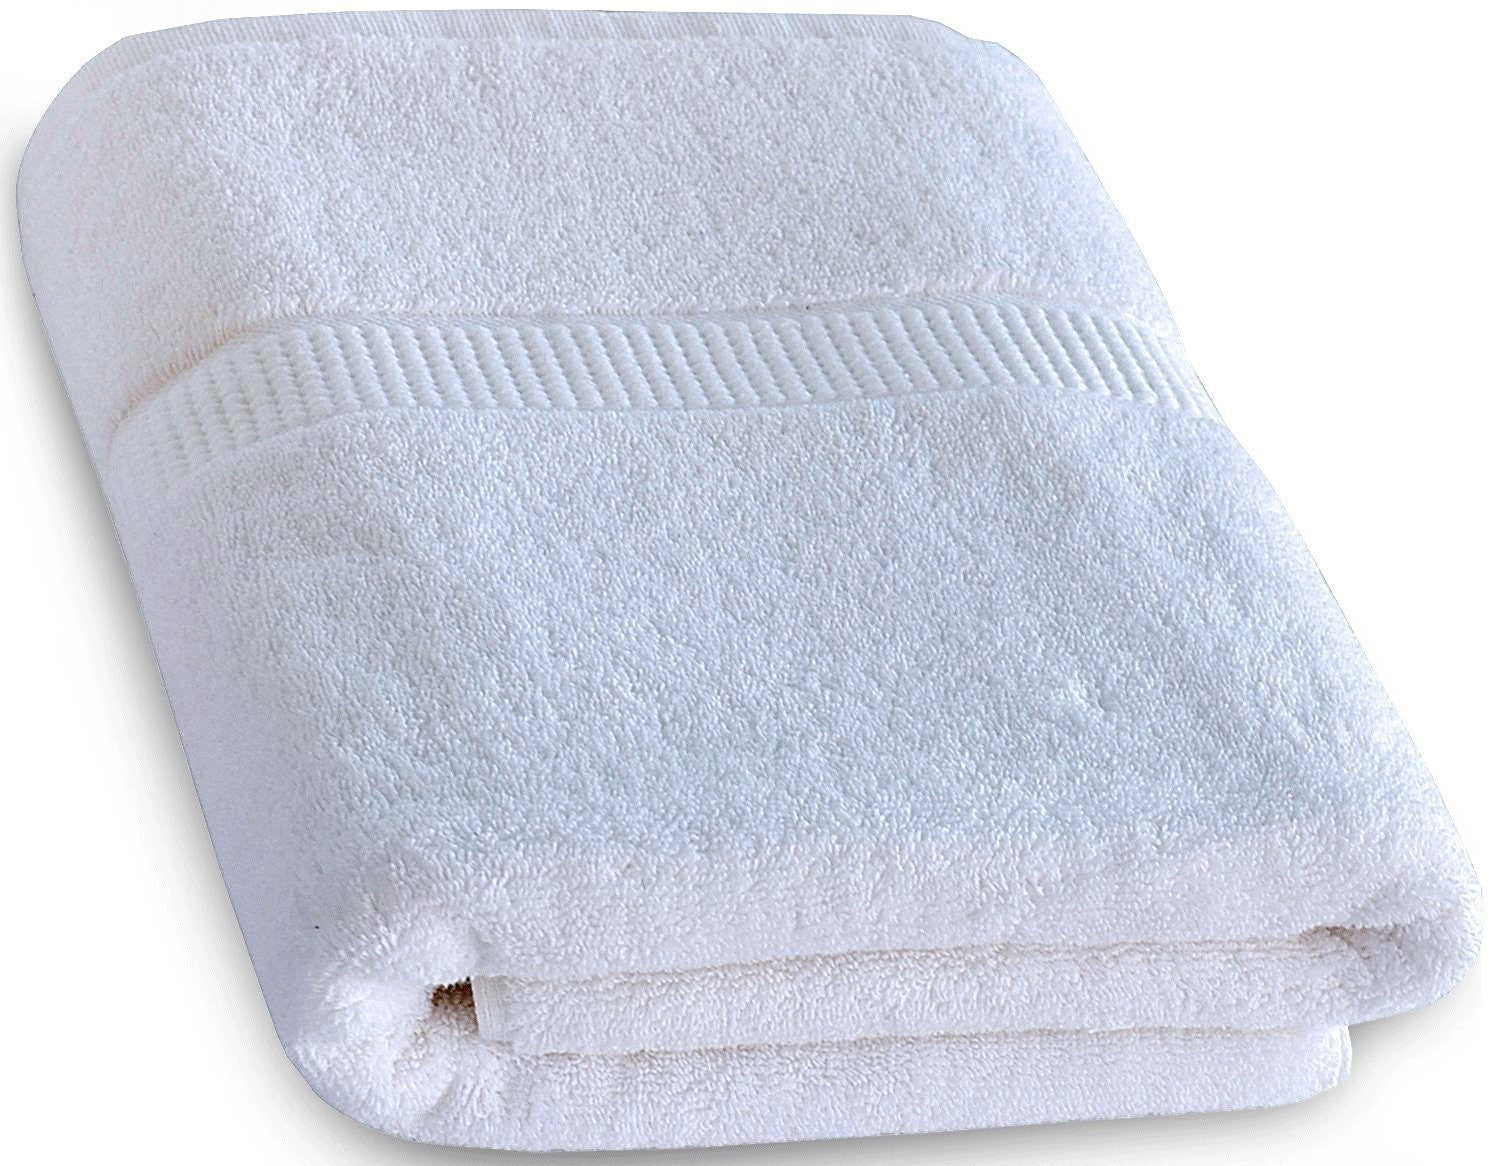 Cotton Luxury Bath Towel - White